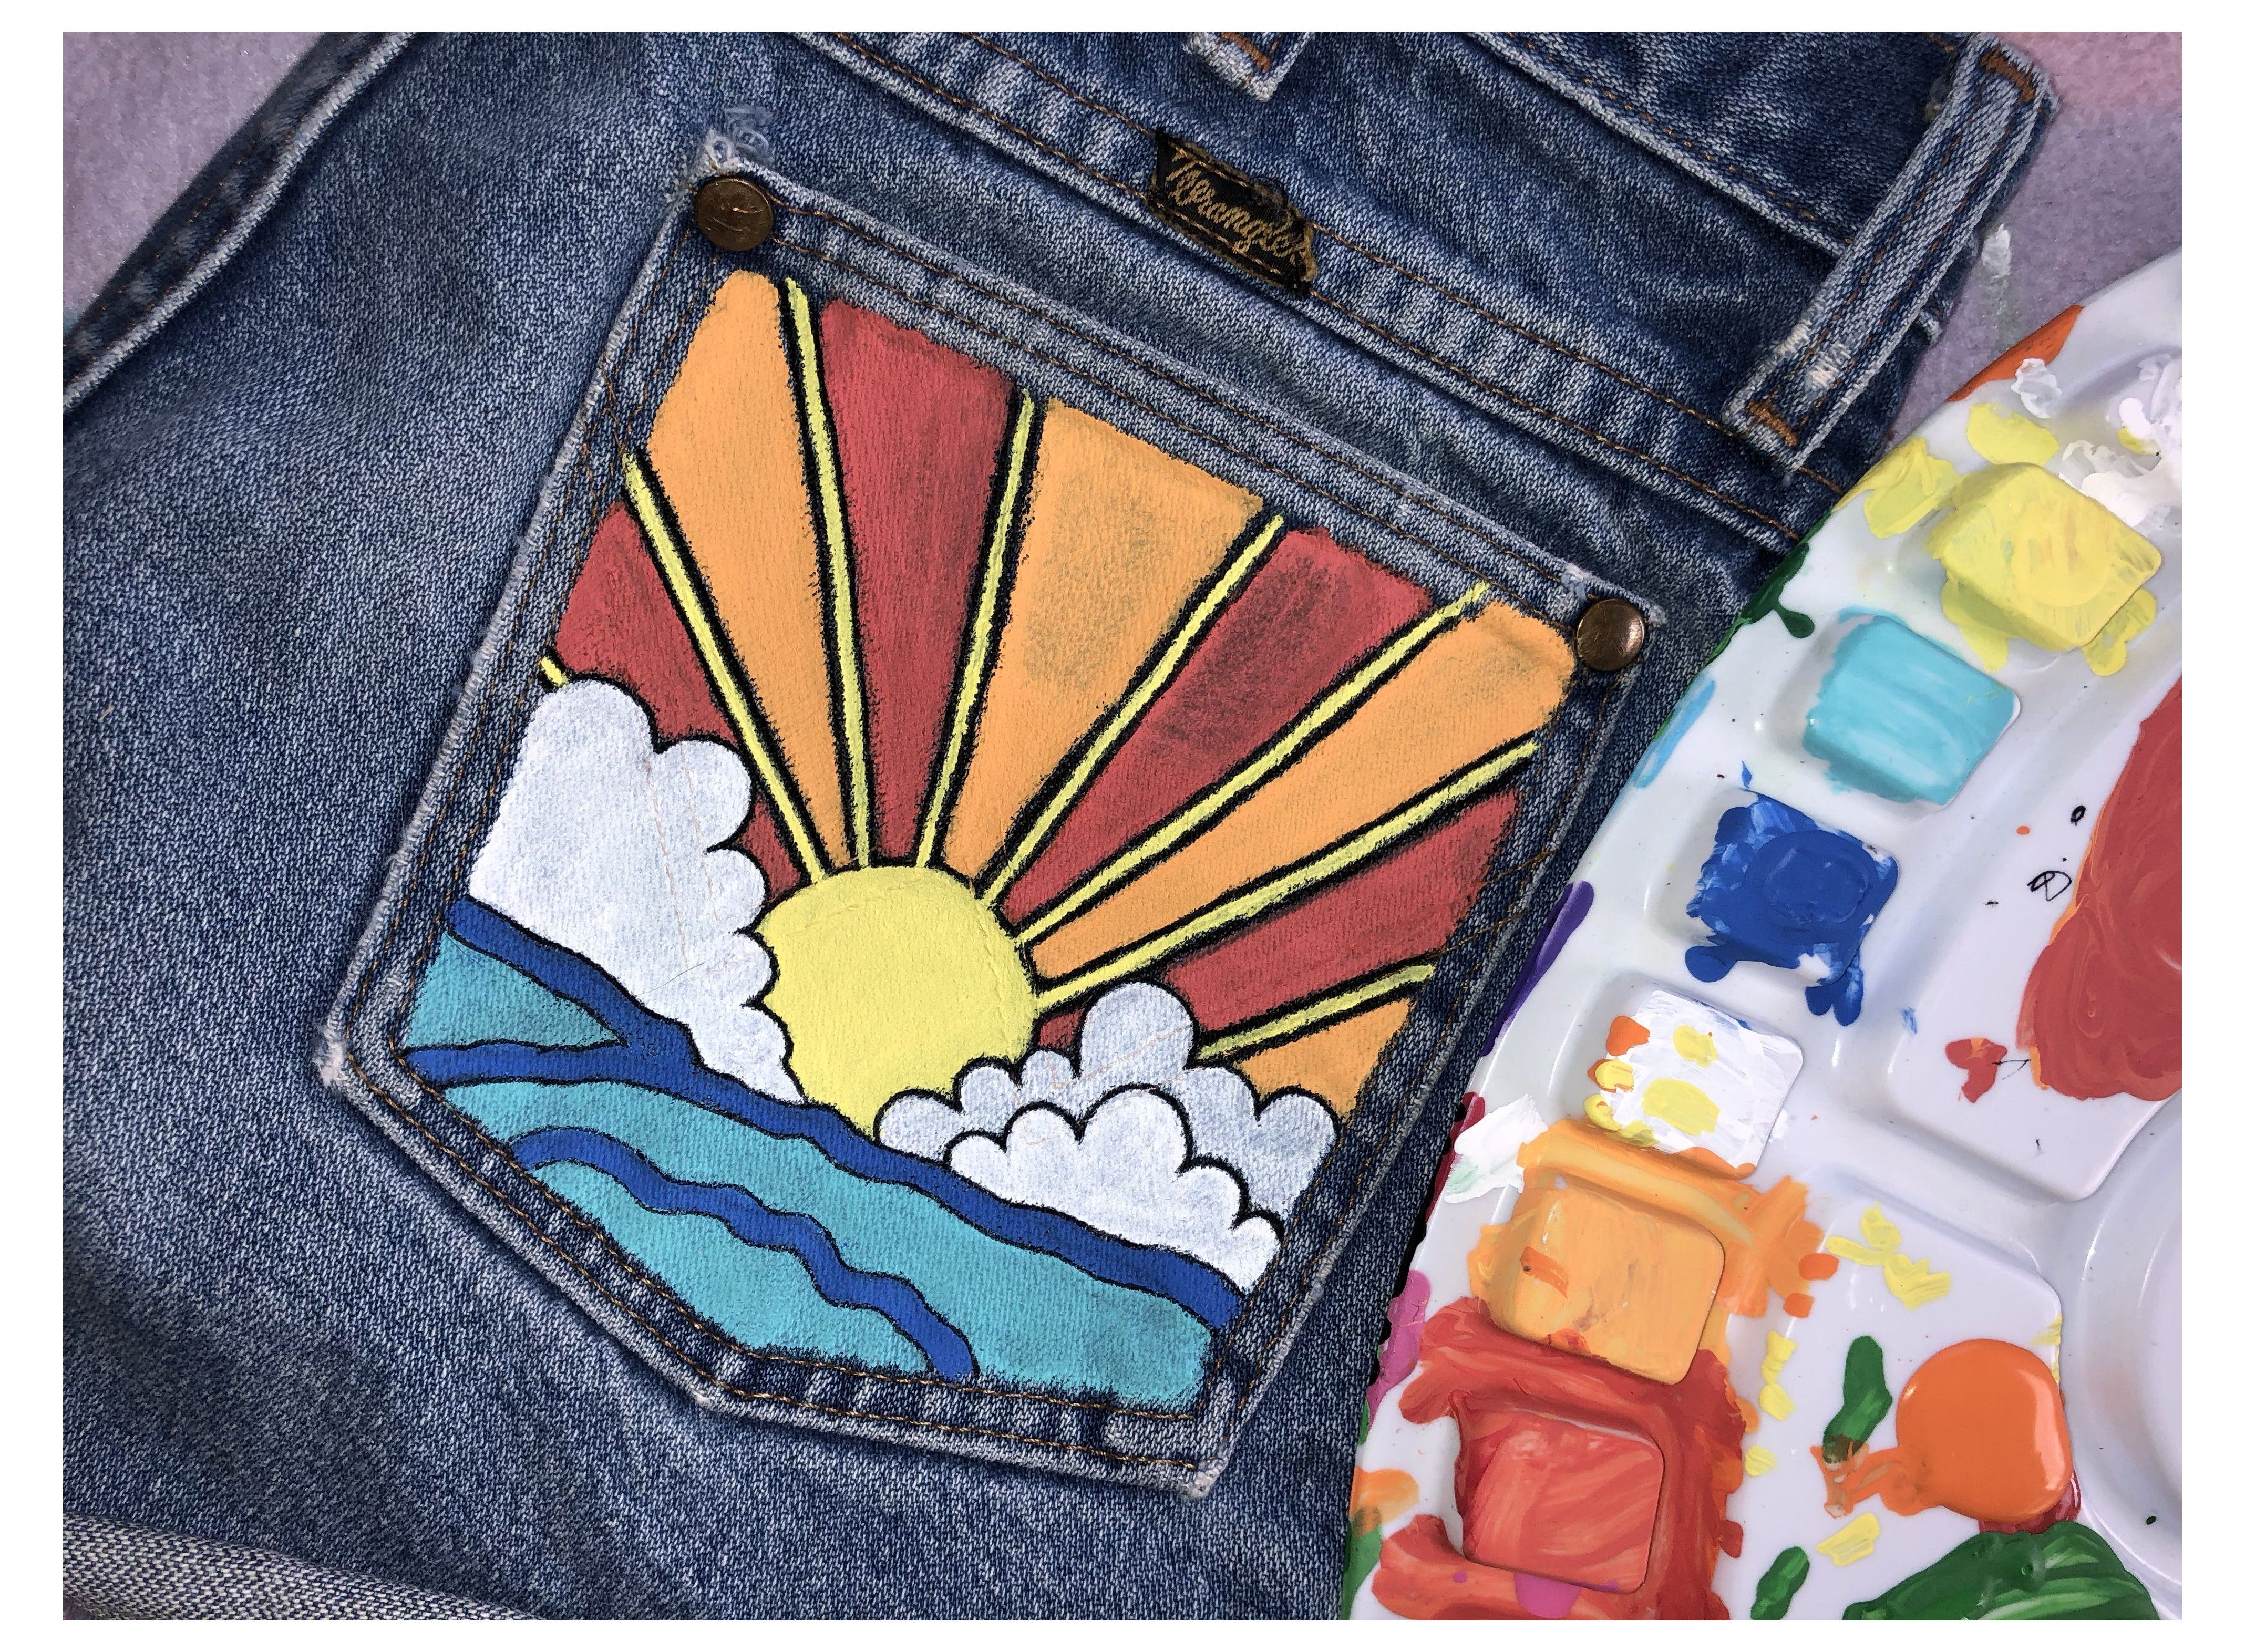 Can You Get Acrylic Paint Out Of Clothes Pocketful Of Sunshine Jean Pocket Painting Sunflower Acrylic Paint On Jean Pocket In 2020 Painted Clothes Diy Painted Jeans Painted Denim